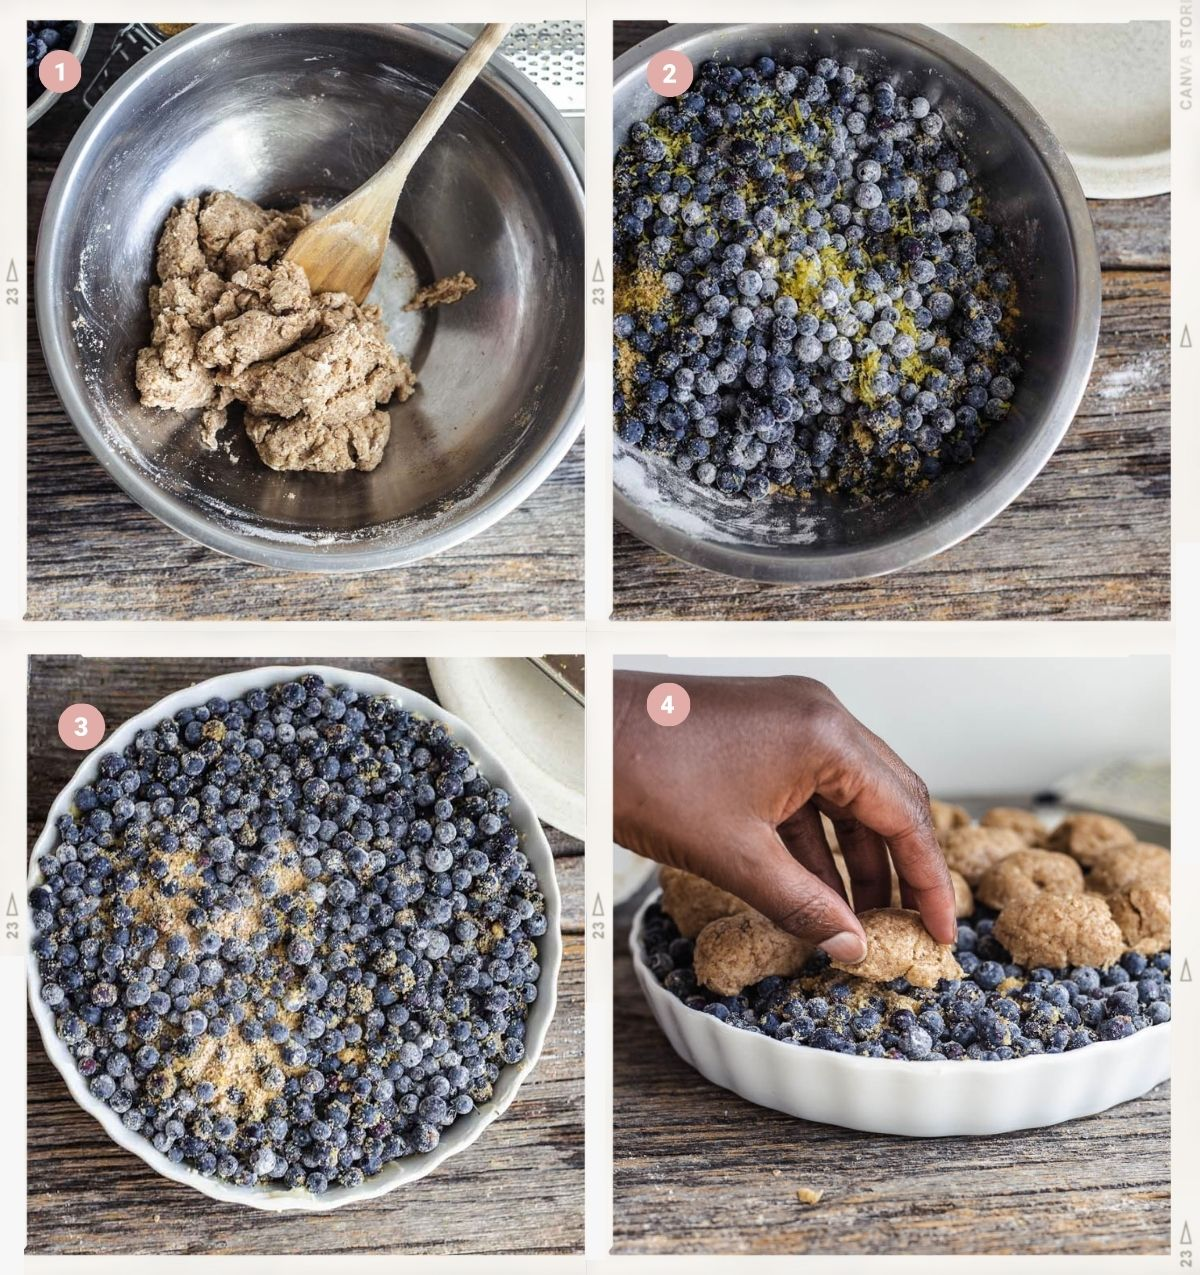 Four-step photo collage showing how to make vegan blueberry cobbler